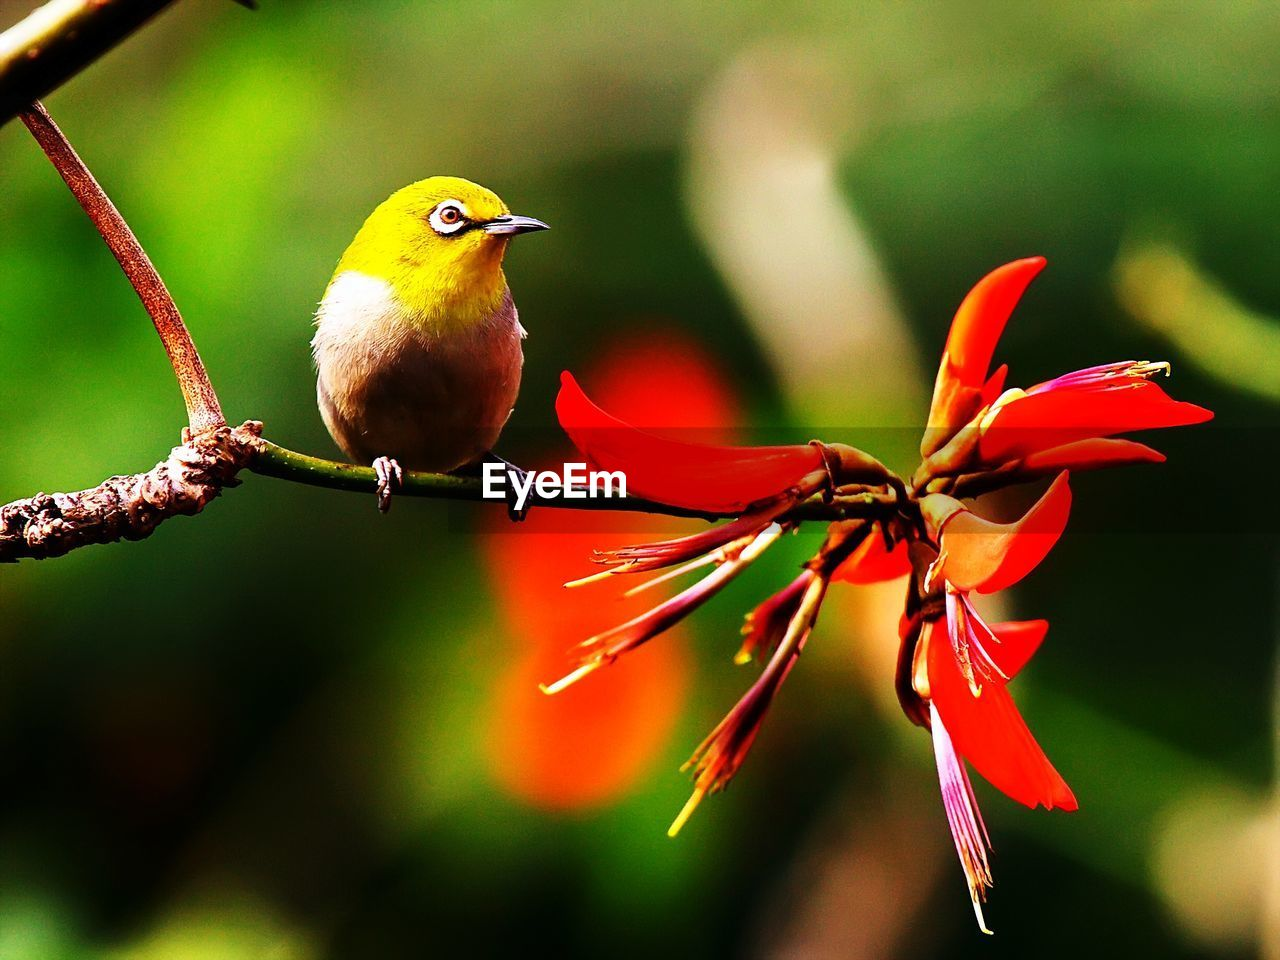 nature, beauty in nature, focus on foreground, one animal, animals in the wild, flower, outdoors, day, red, bird, growth, animal themes, close-up, no people, plant, perching, flower head